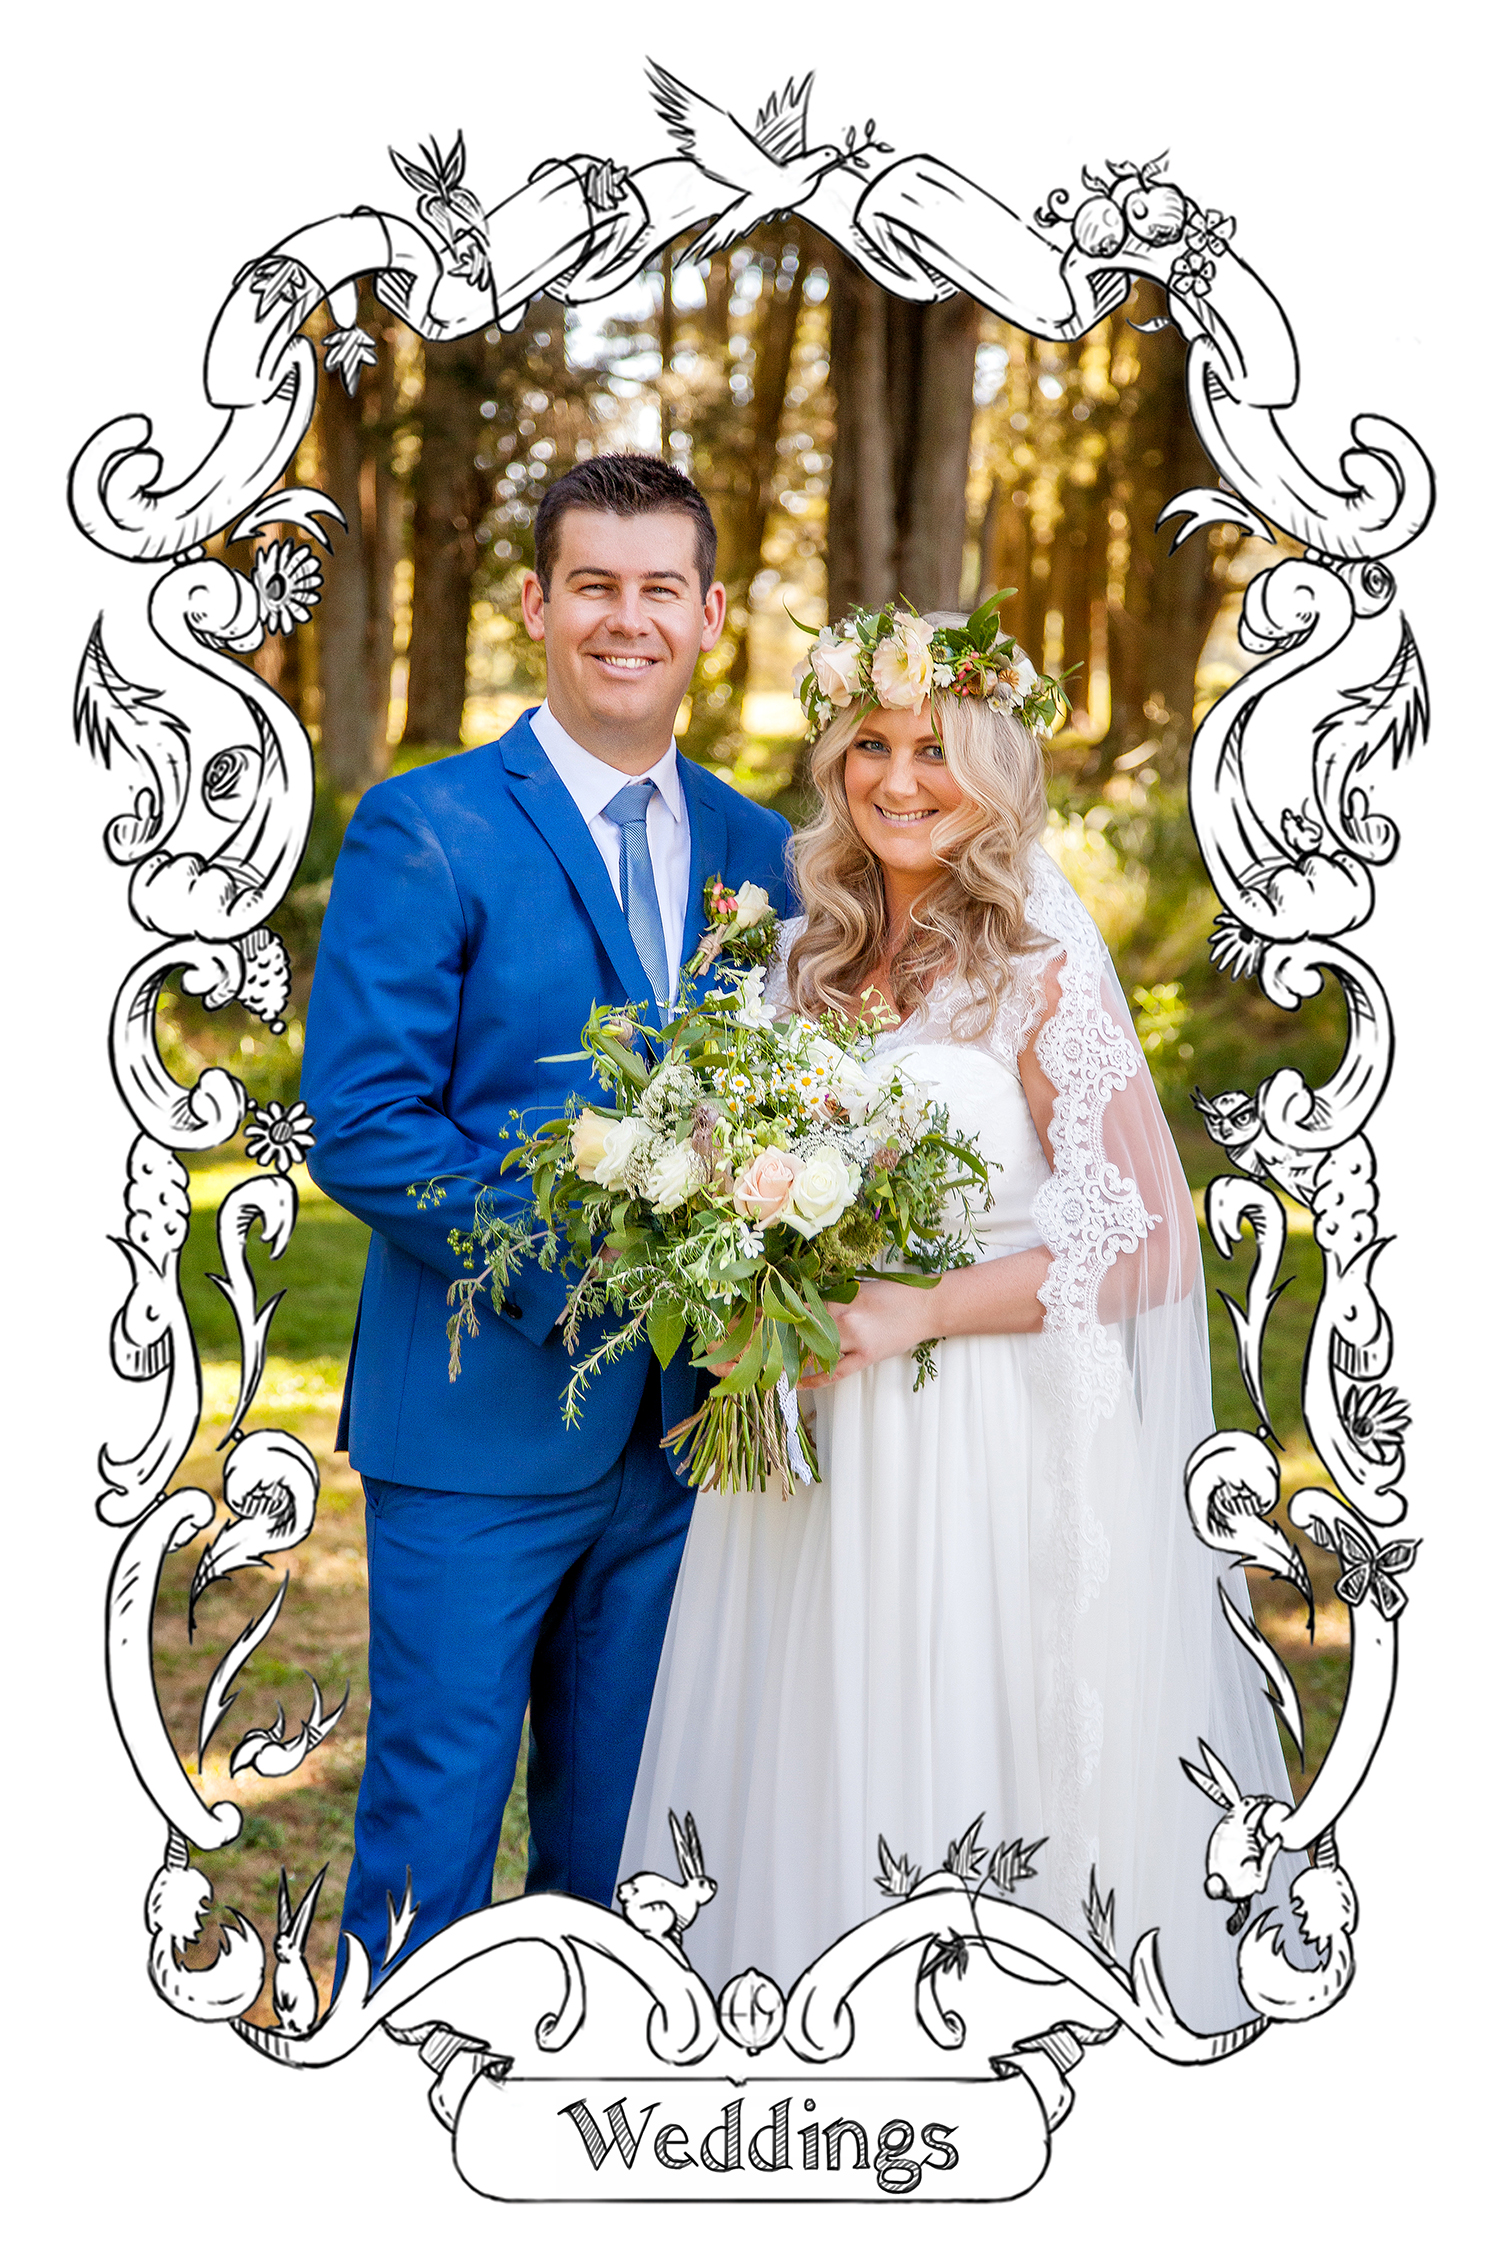 Weddings-Pricing-Packages-Photography